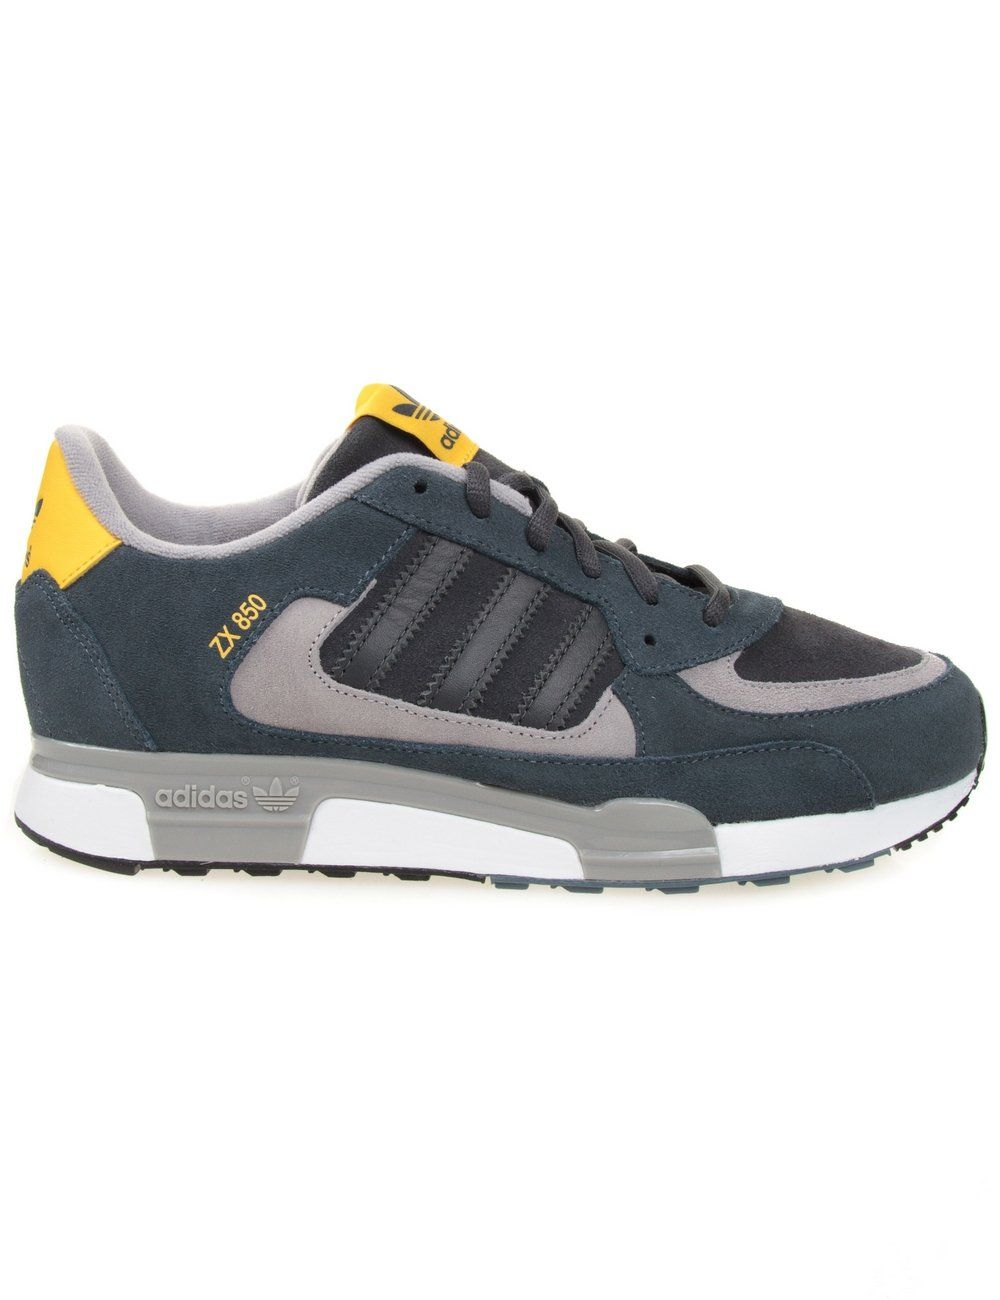 huge selection of 5d782 c704e Adidas Originals ZX 850 - Solid Grey Gold